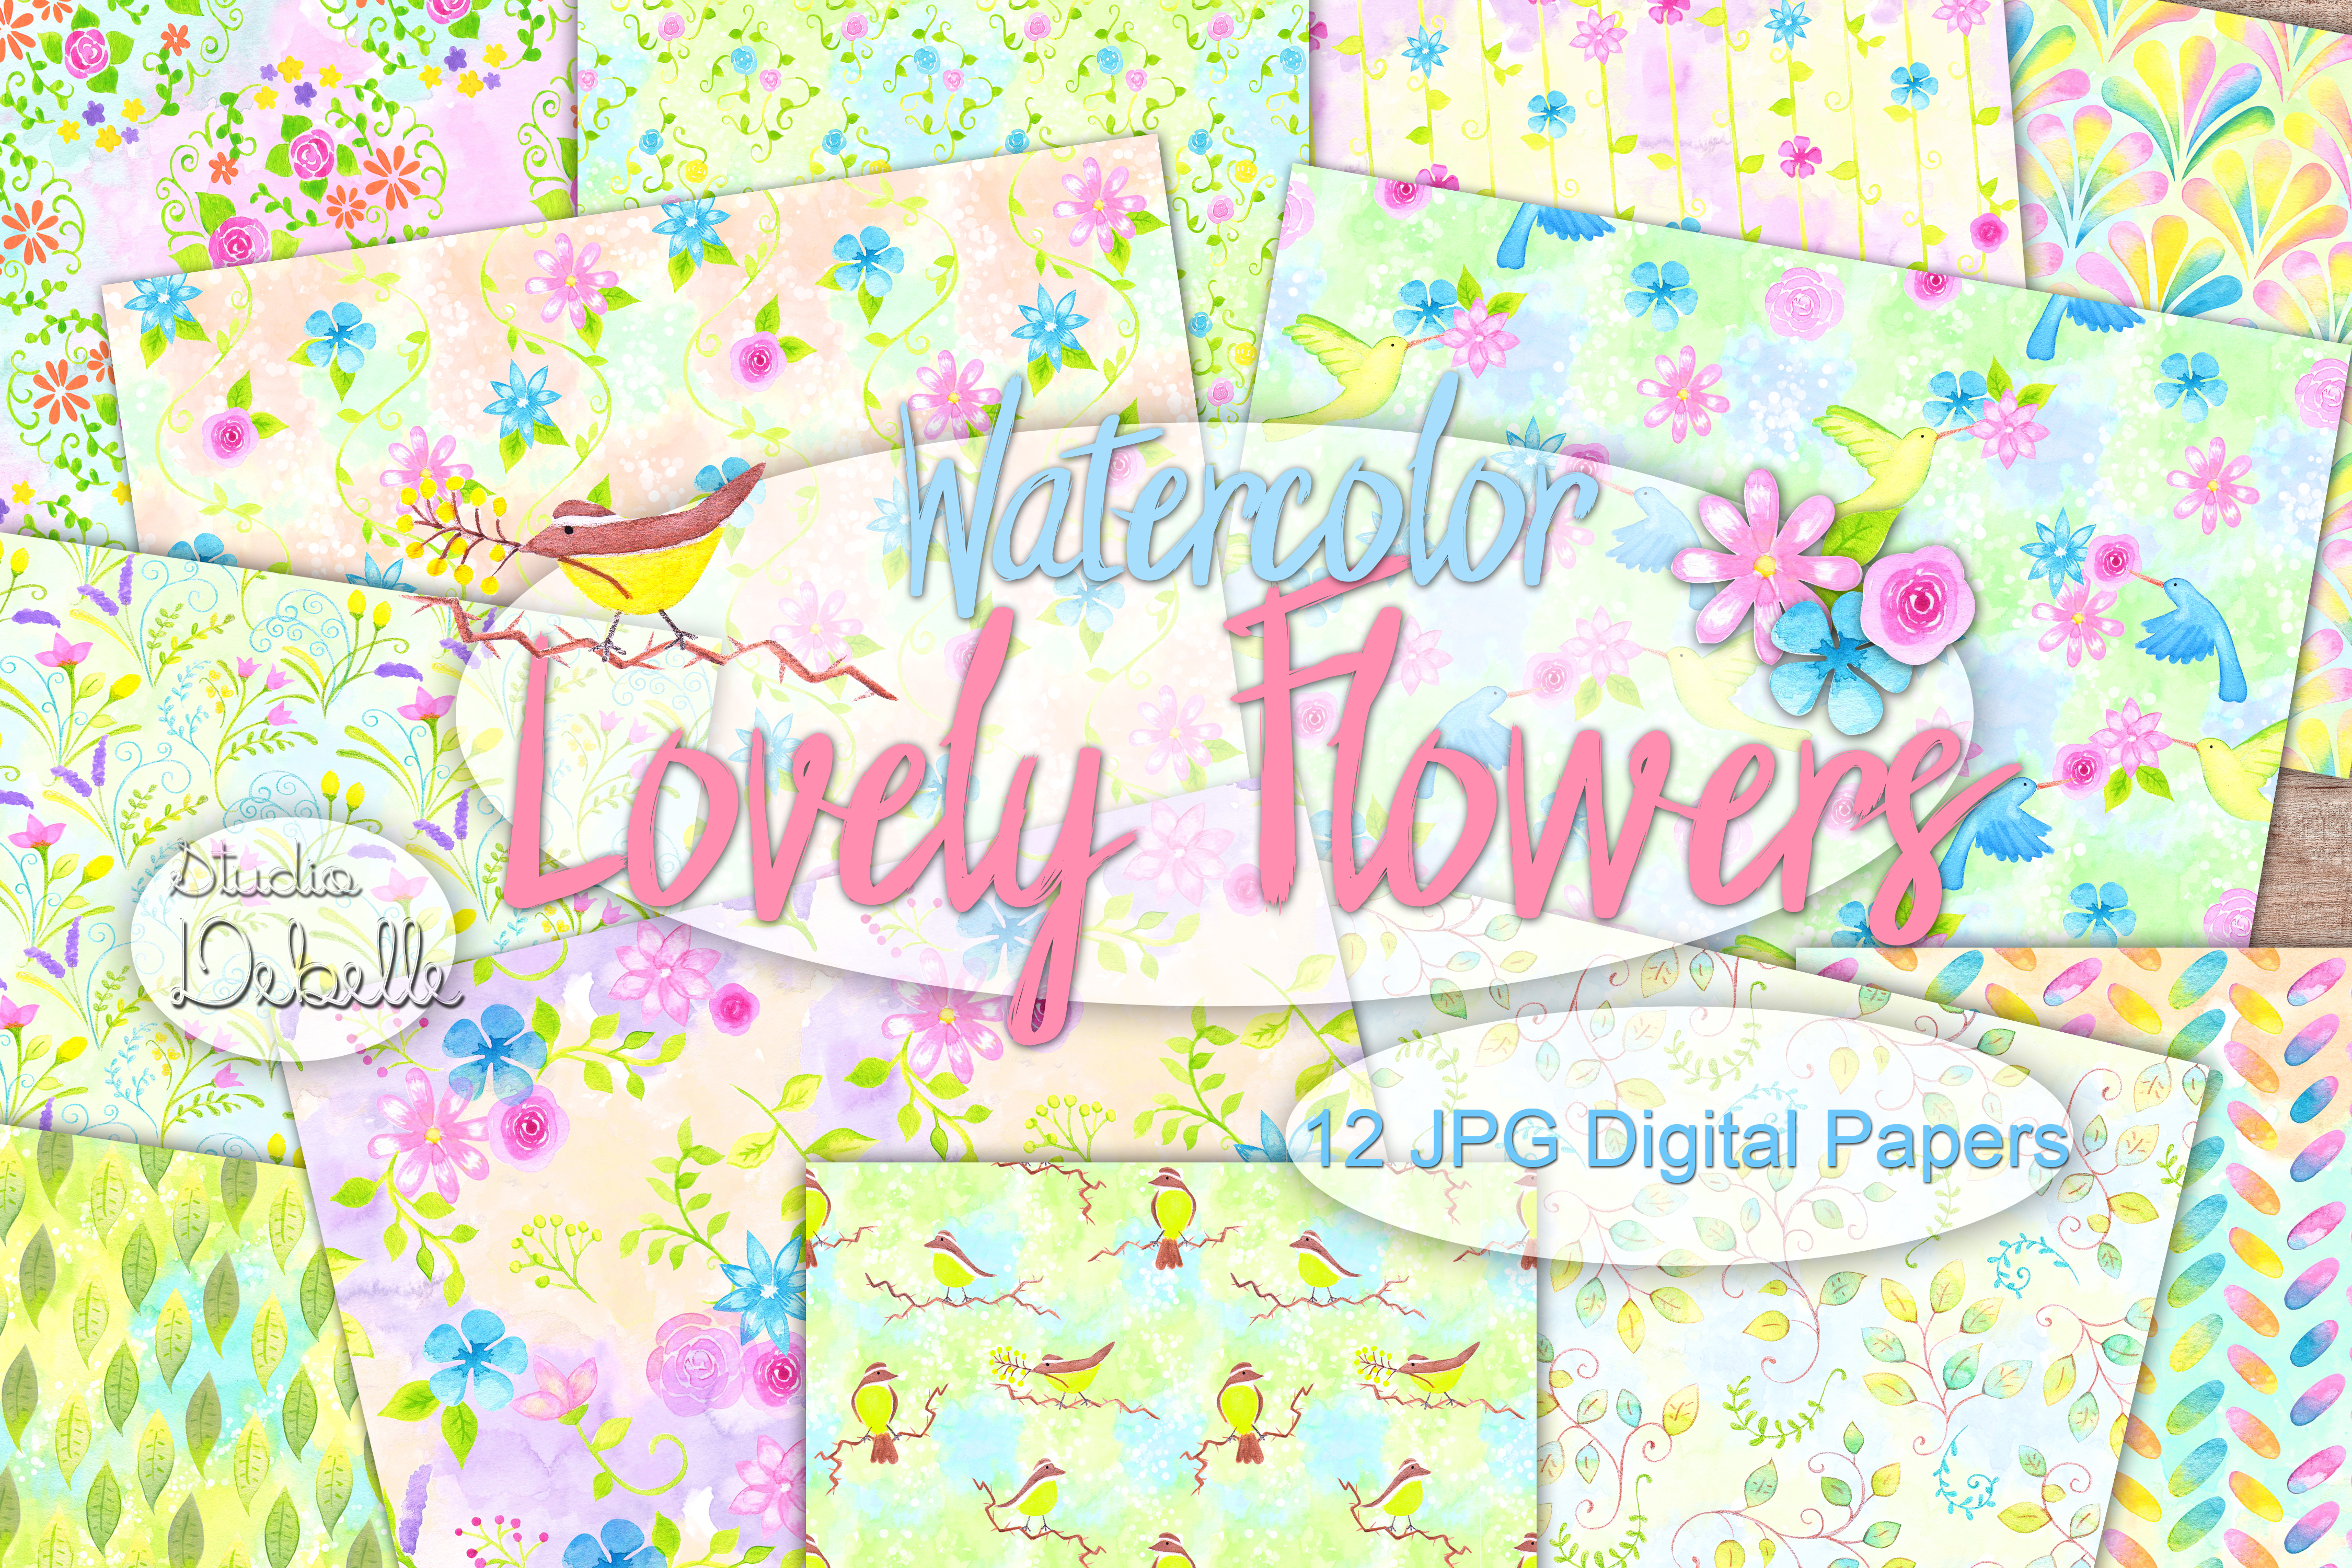 Watercolor Lovely Flowers - digital papers seamless patterns example image 1